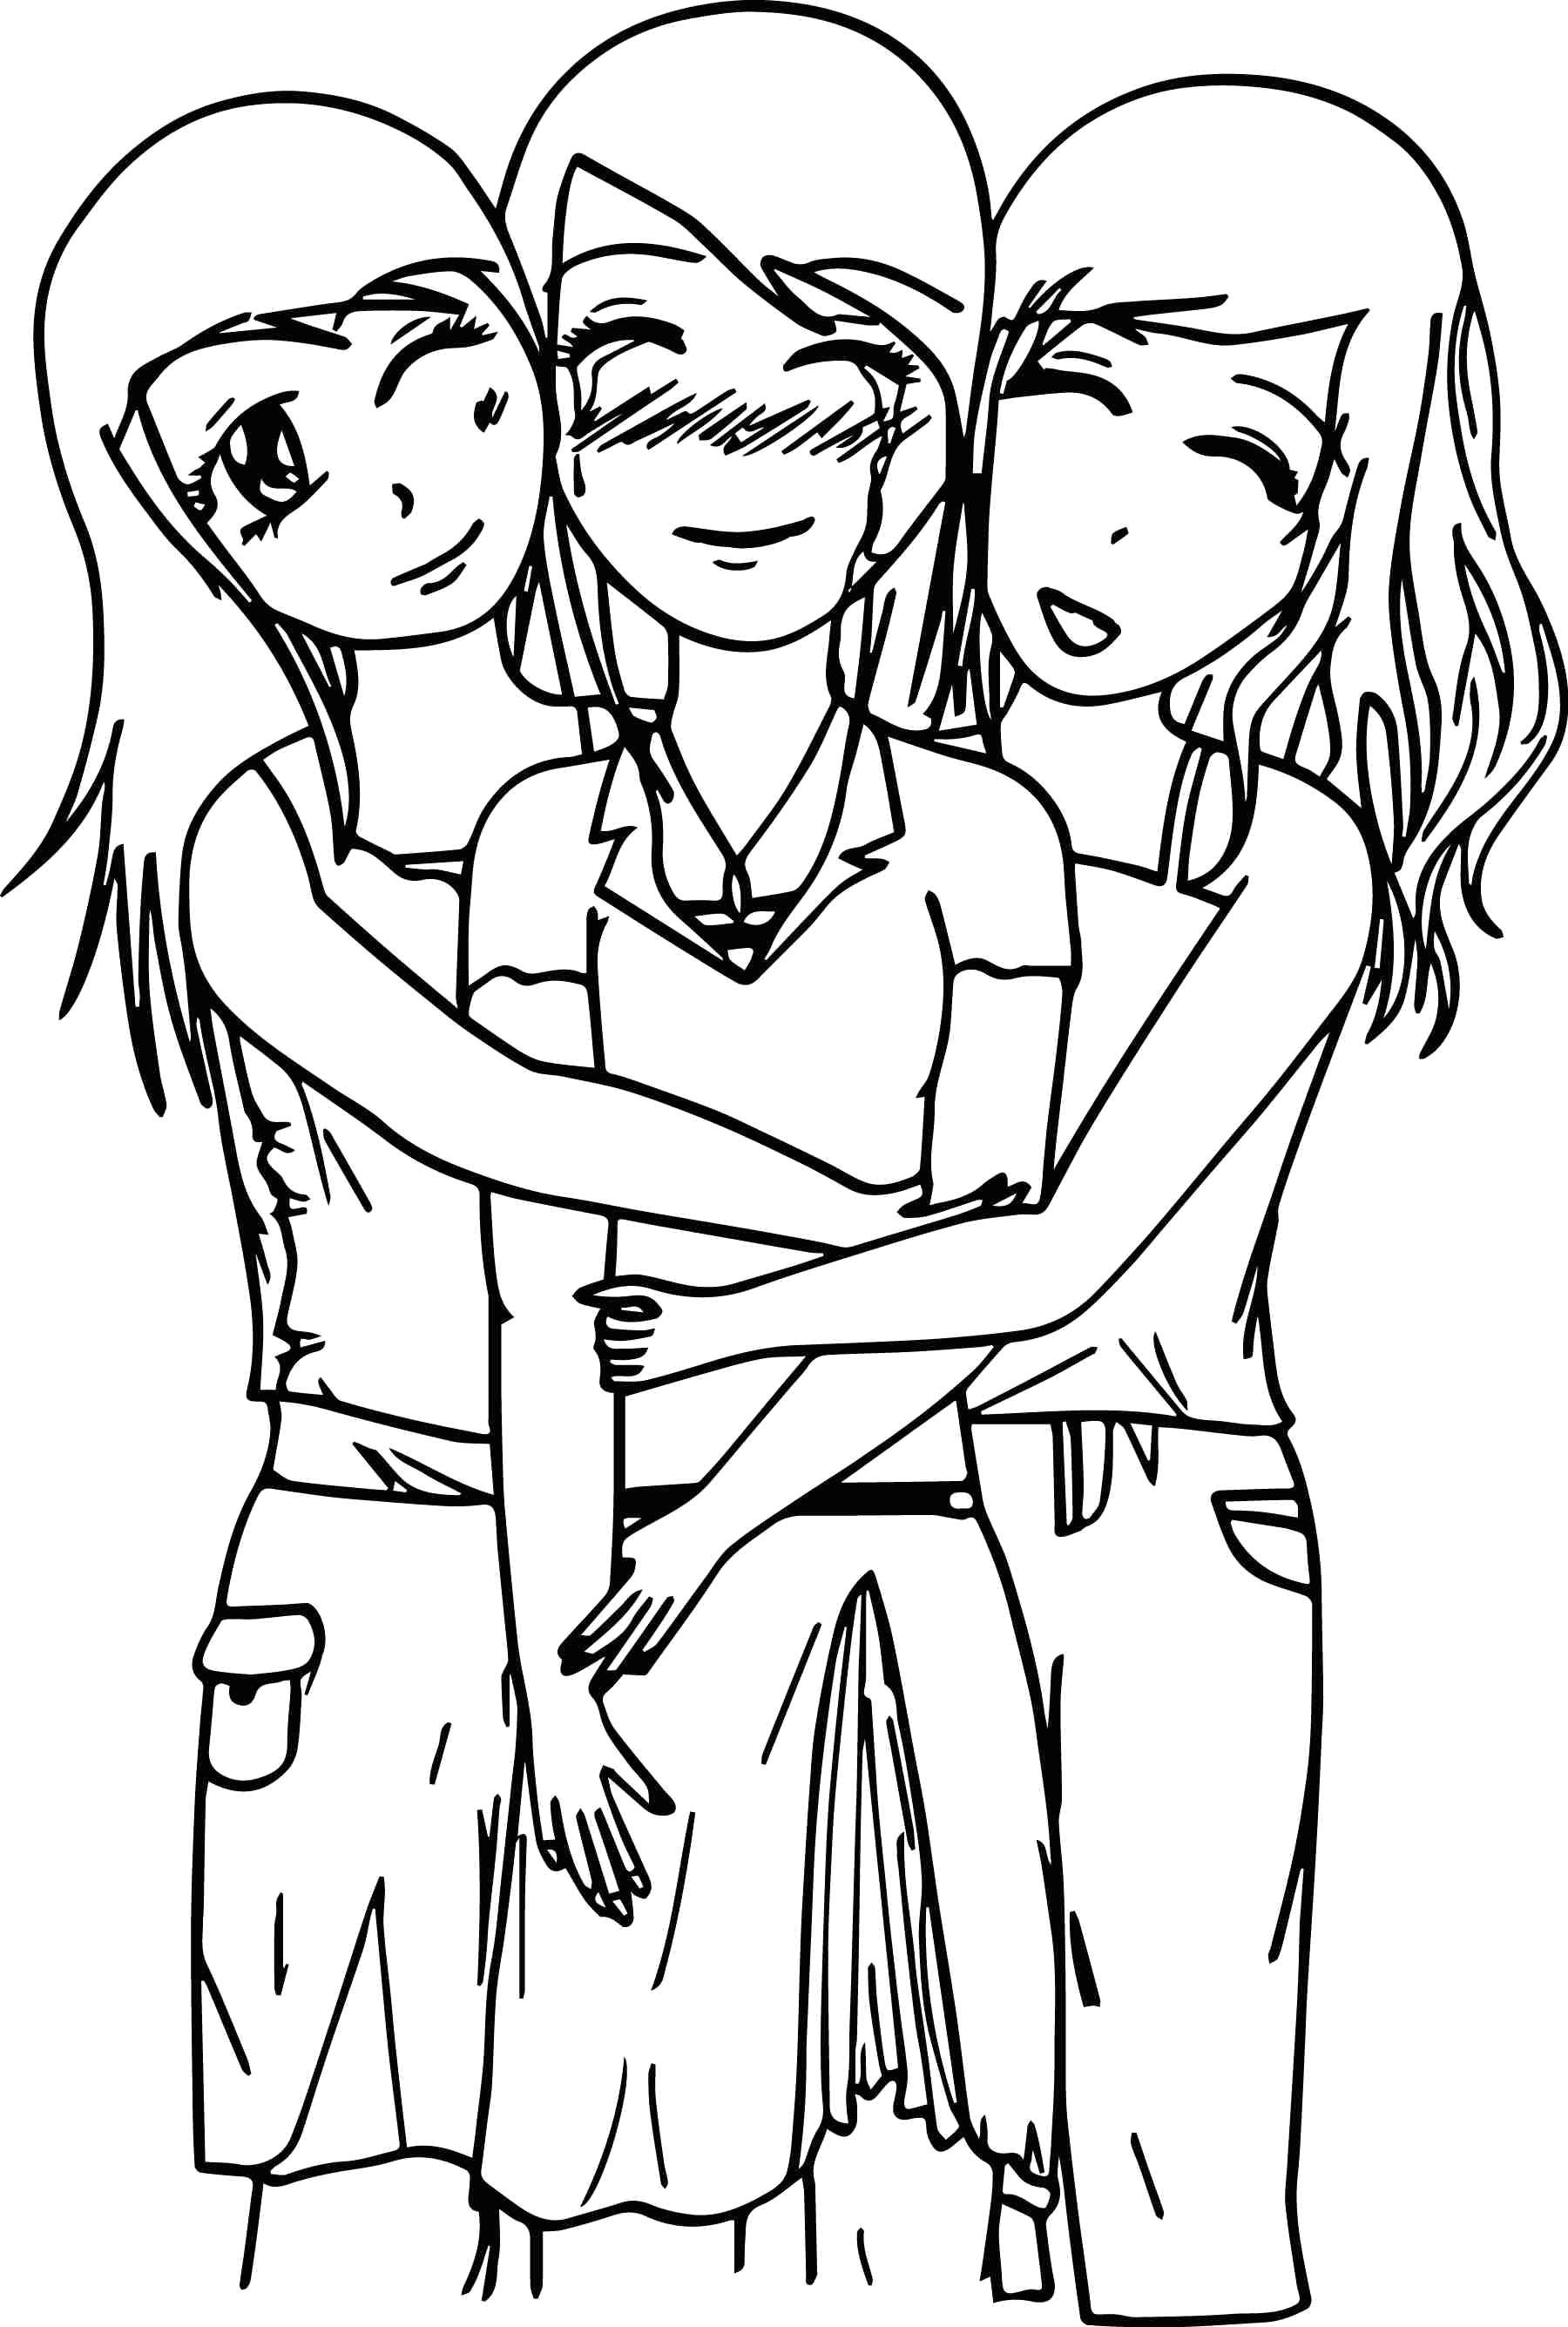 Confidential Best Friend Coloring Pages To Print Friends Forever ...